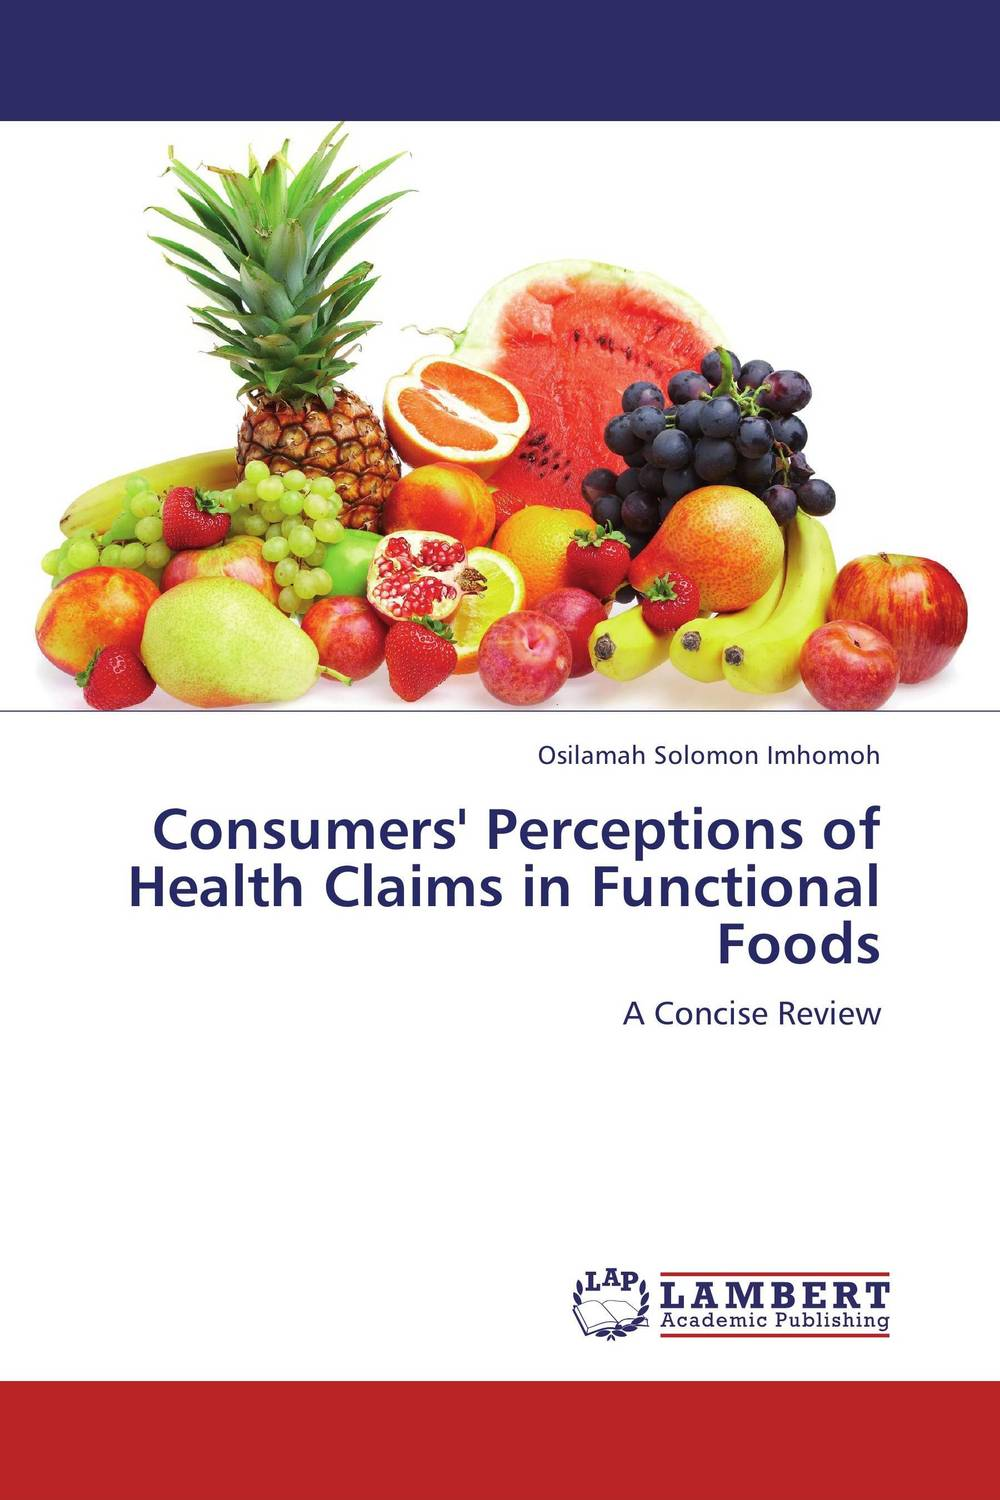 Consumers' Perceptions of Health Claims in Functional Foods cheryl baldwin j the 10 principles of food industry sustainability